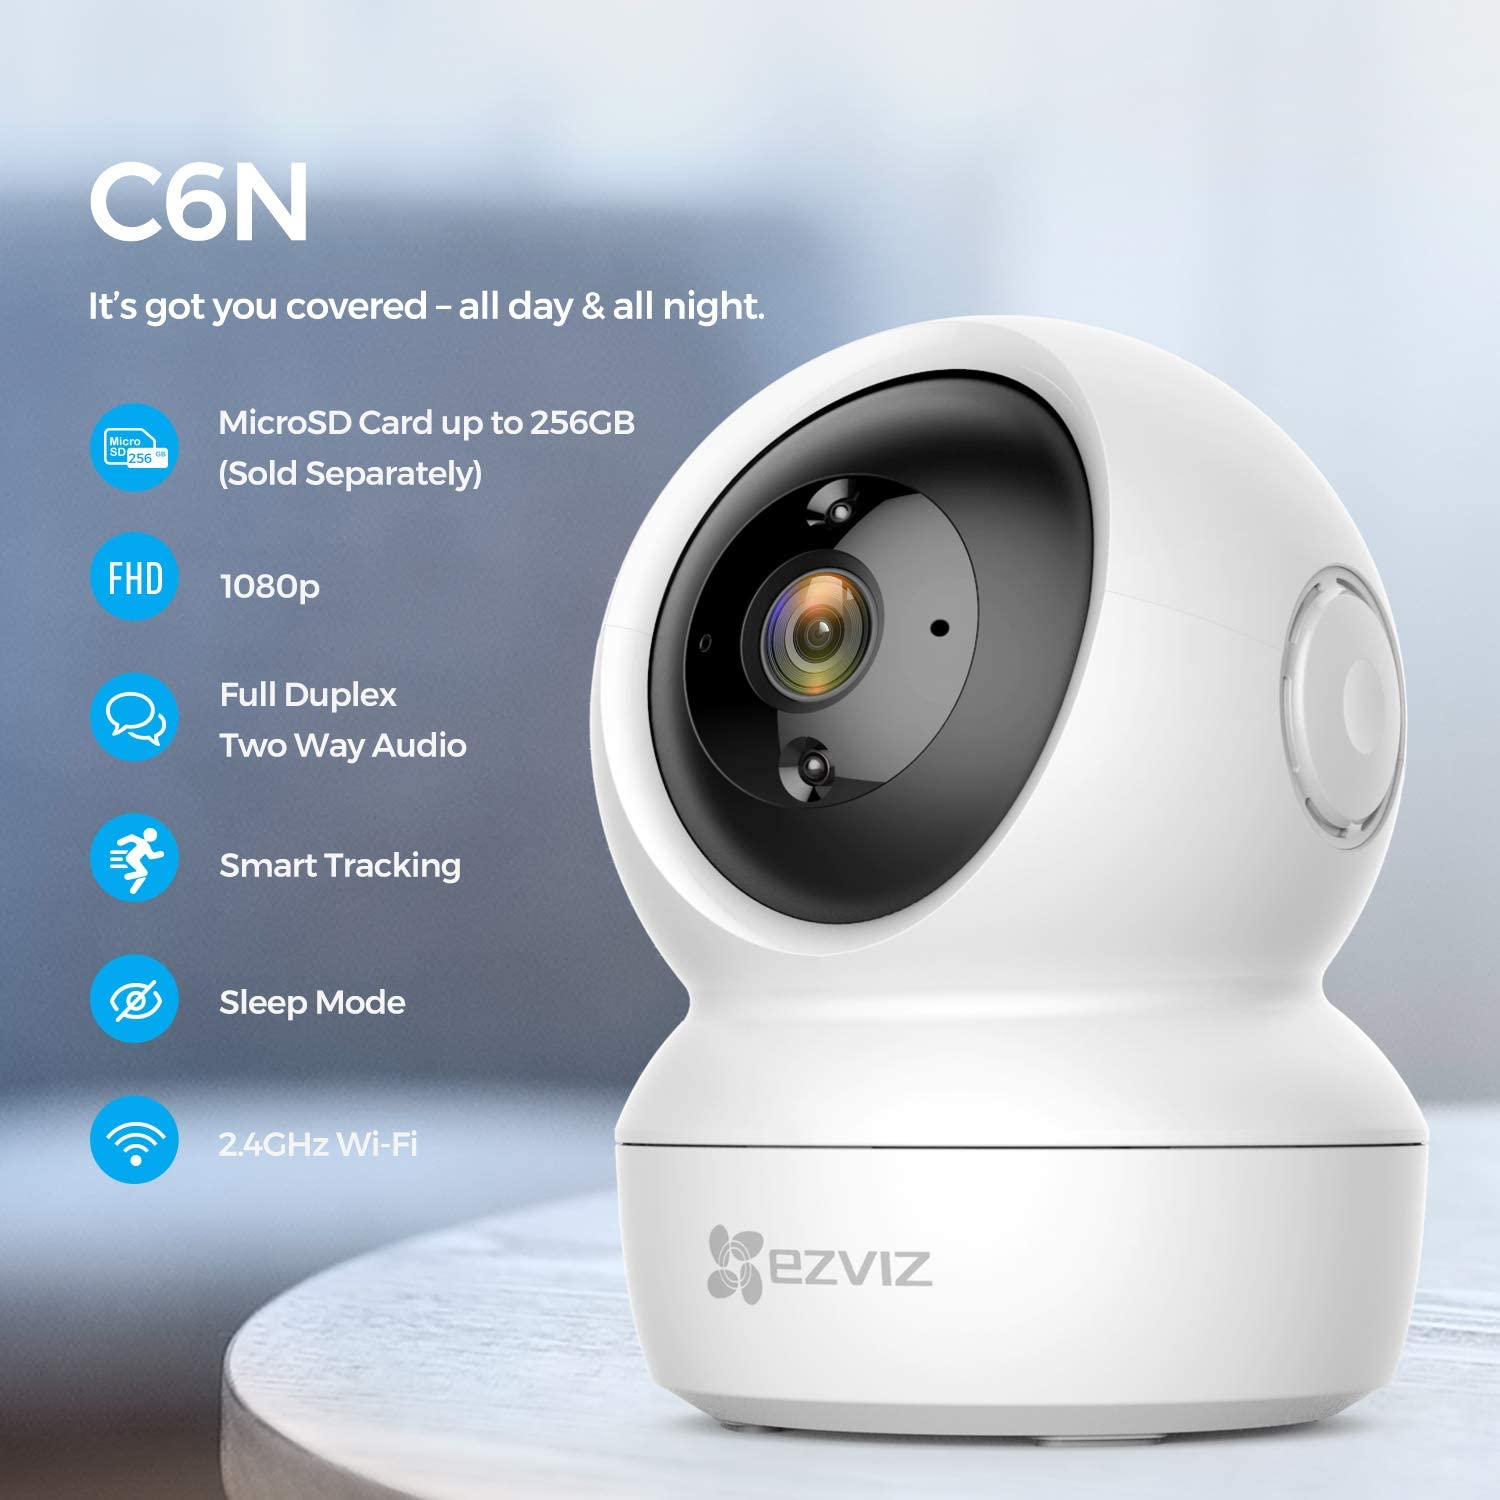 EZVIZ C6N Pan/Tilt Security Camera 1080p Indoor Dome Smart IR Night Vision Motion Detection Auto Tracking Two-Way Audio